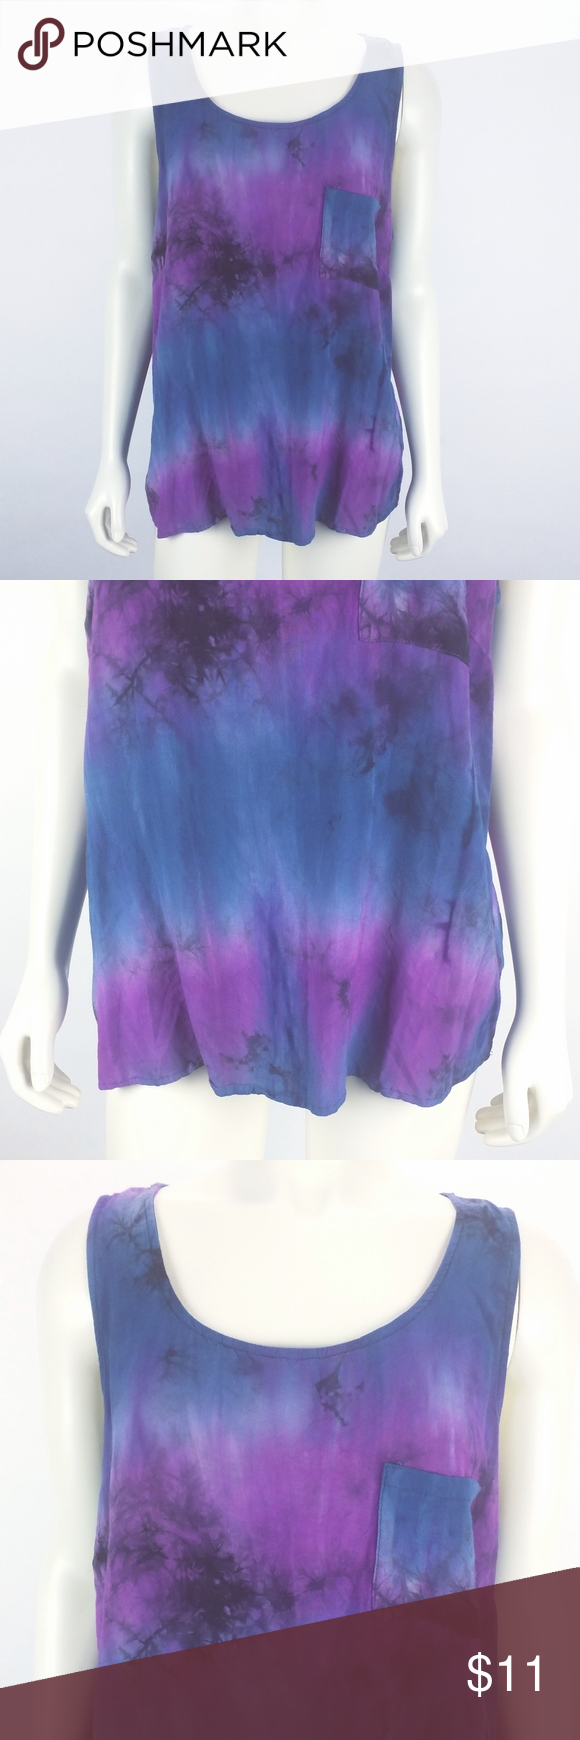 8674bb4e308 Forever 21+ Plus Size Blue Purple Tie Dye Tank 2X